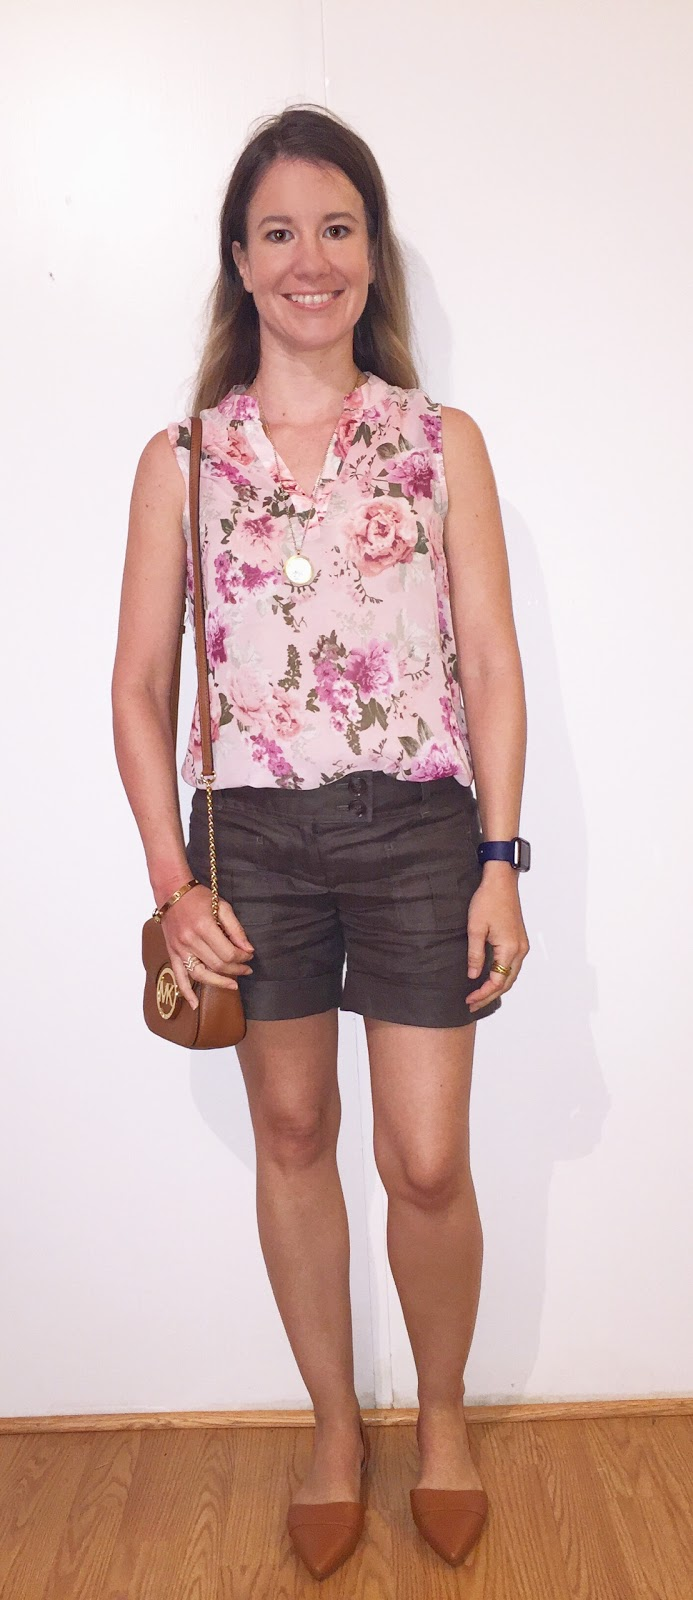 J. Crew Flats No Boundaries Pink Floral Sleeveless Blouse The Limited Hunter Green Shorts